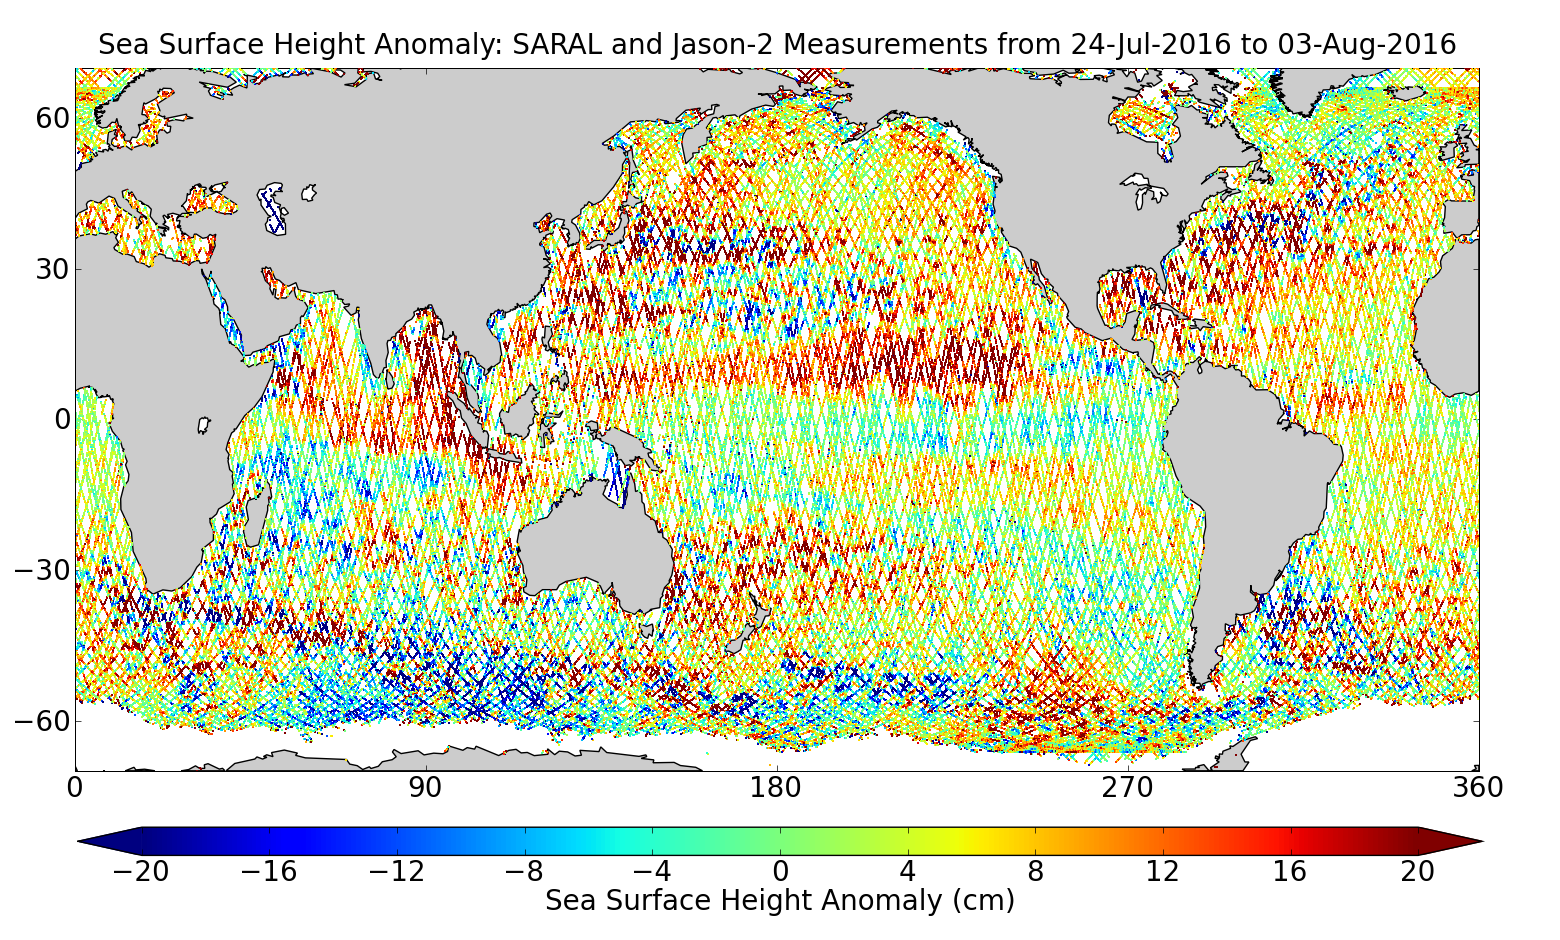 Sea Surface Height Anomaly: SARAL and Jason-2 Measurements from 24-Jul-2016 to 03-Aug-2016